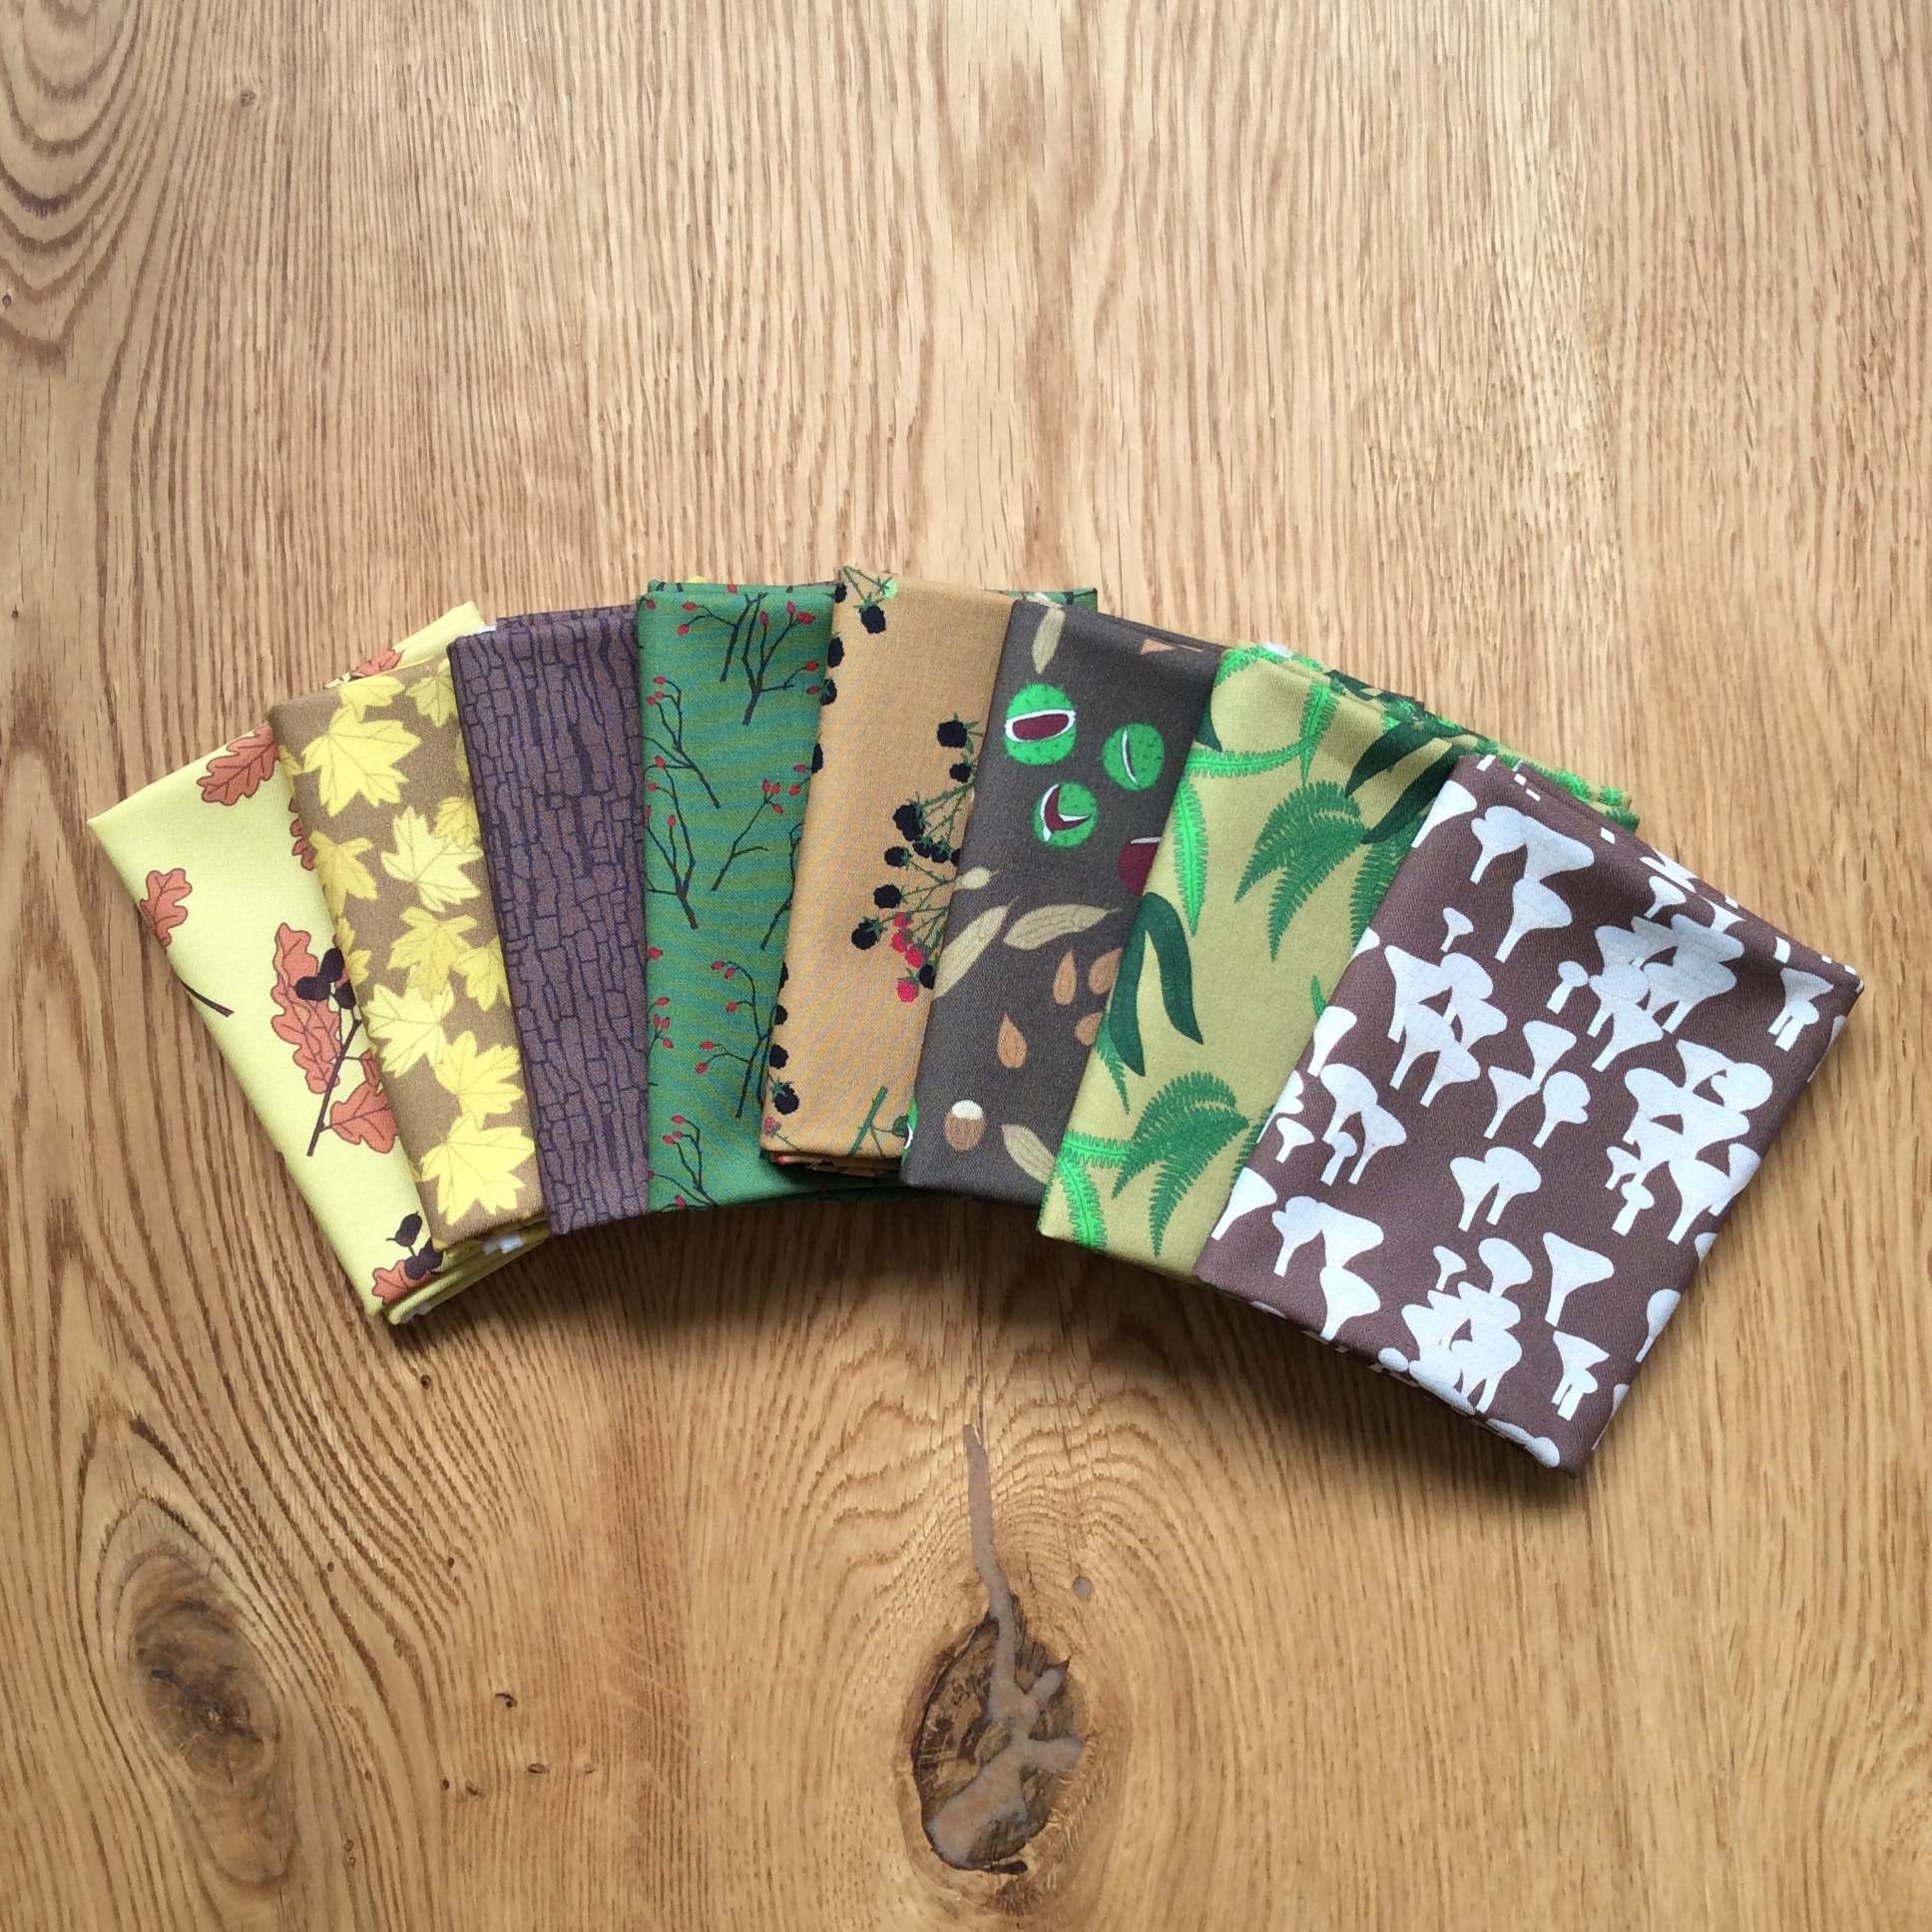 Autumn woodland fabric fat quarter bundle